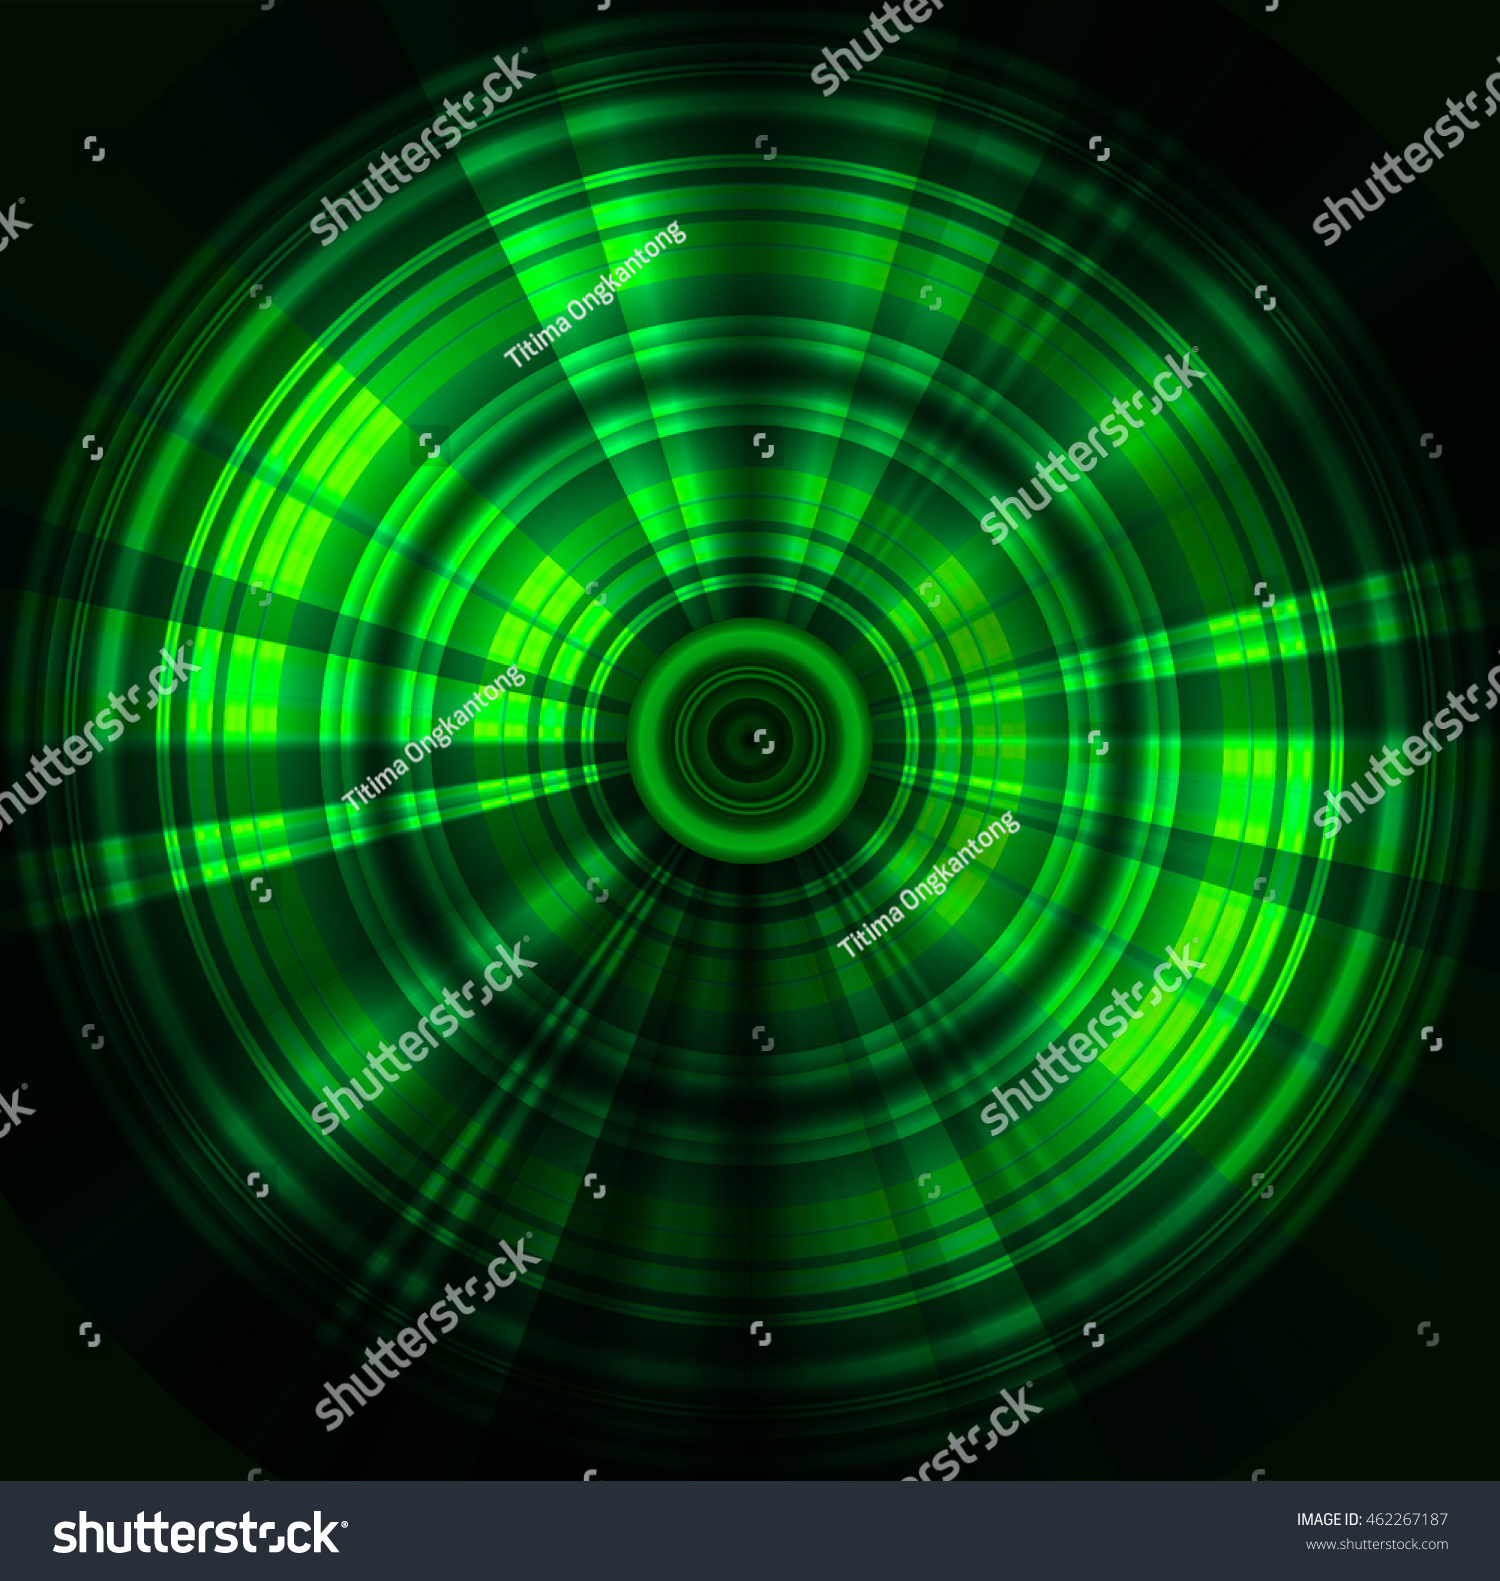 Green Eye Abstract Cyber Future Technology Concept Background Binary Code On Circuit Board Id 462267187